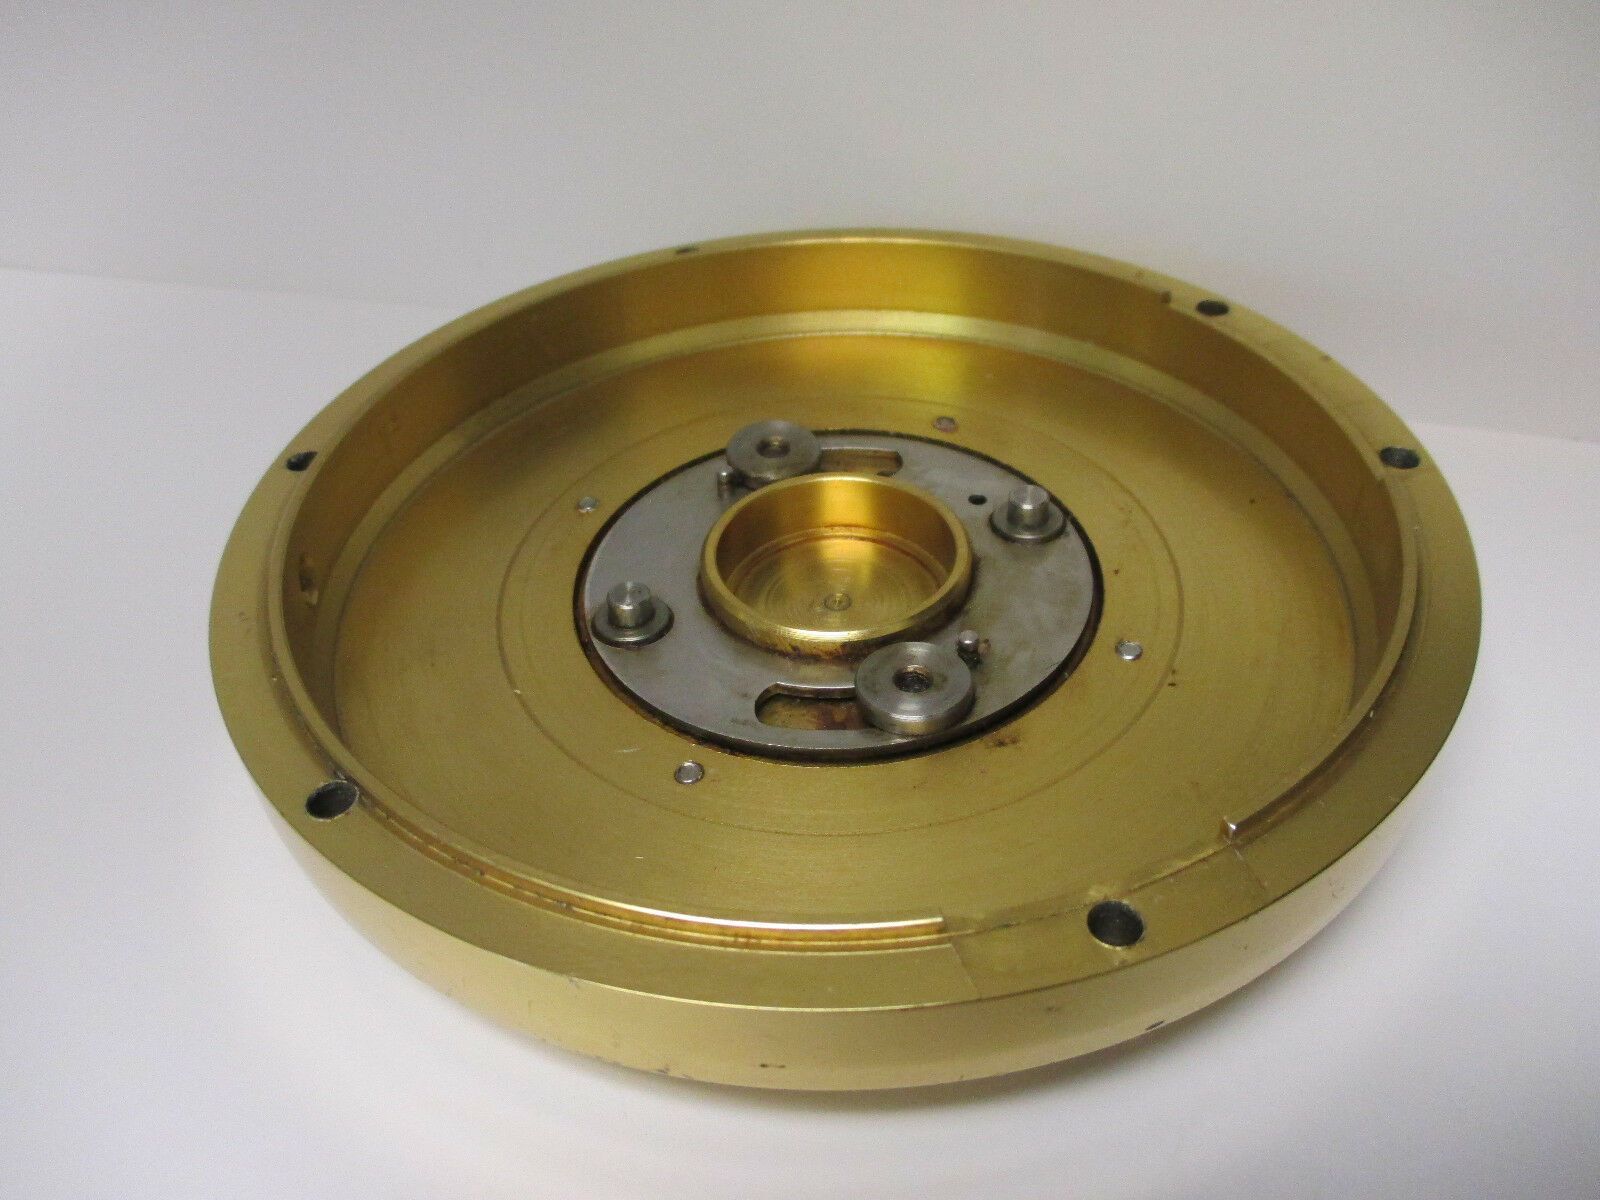 USED PENN BIG GAME REEL PART - - - International 80S - Left Side Plate  A f315ab